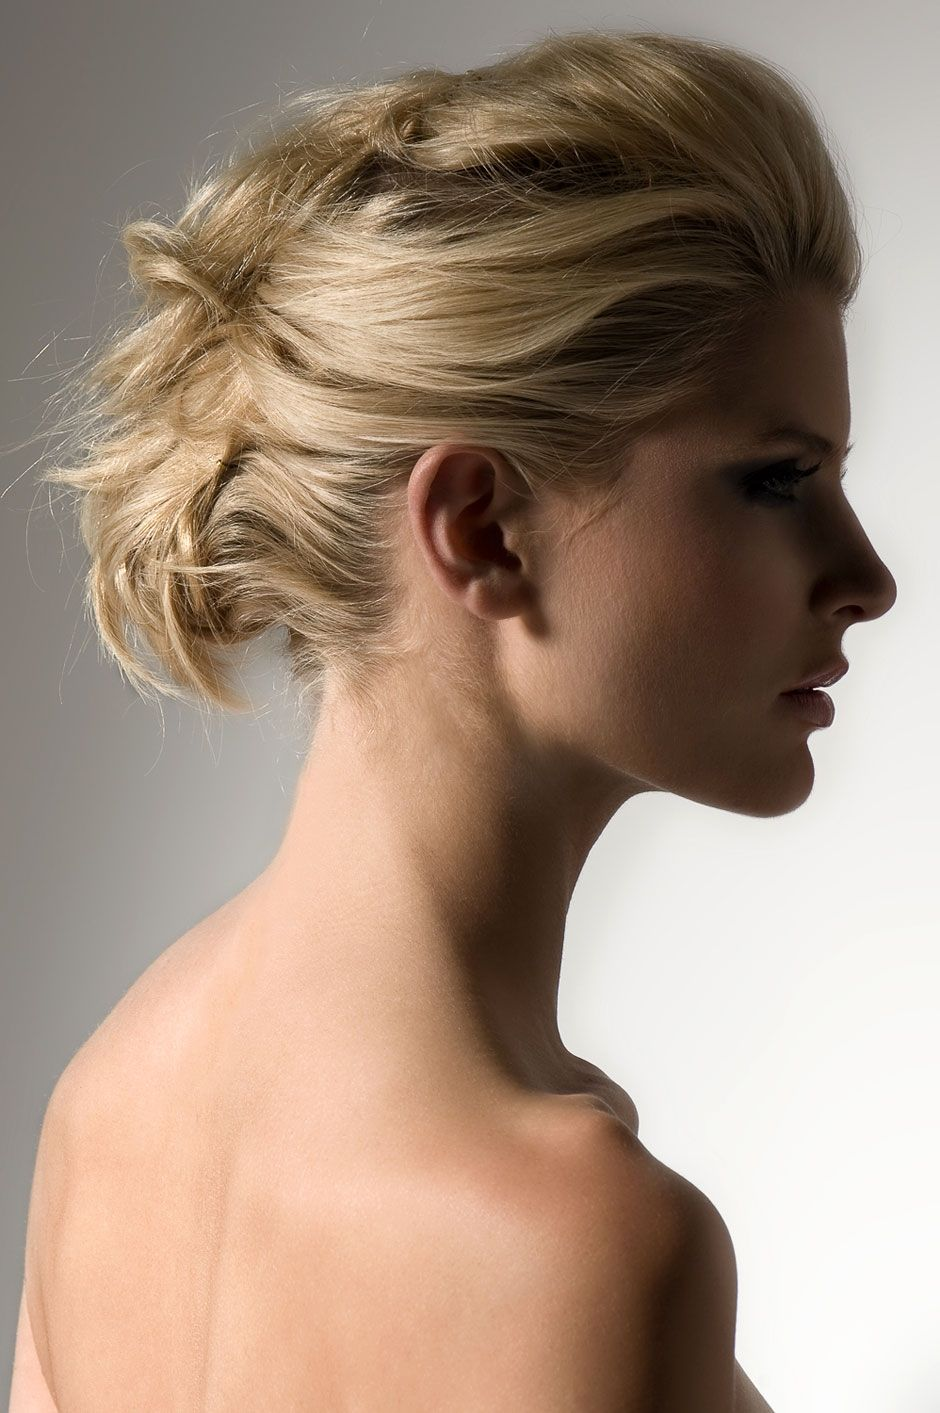 Stupendous Piled Up Pinned Hair Great Up Do Style For Medium Length Hair Short Hairstyles Gunalazisus